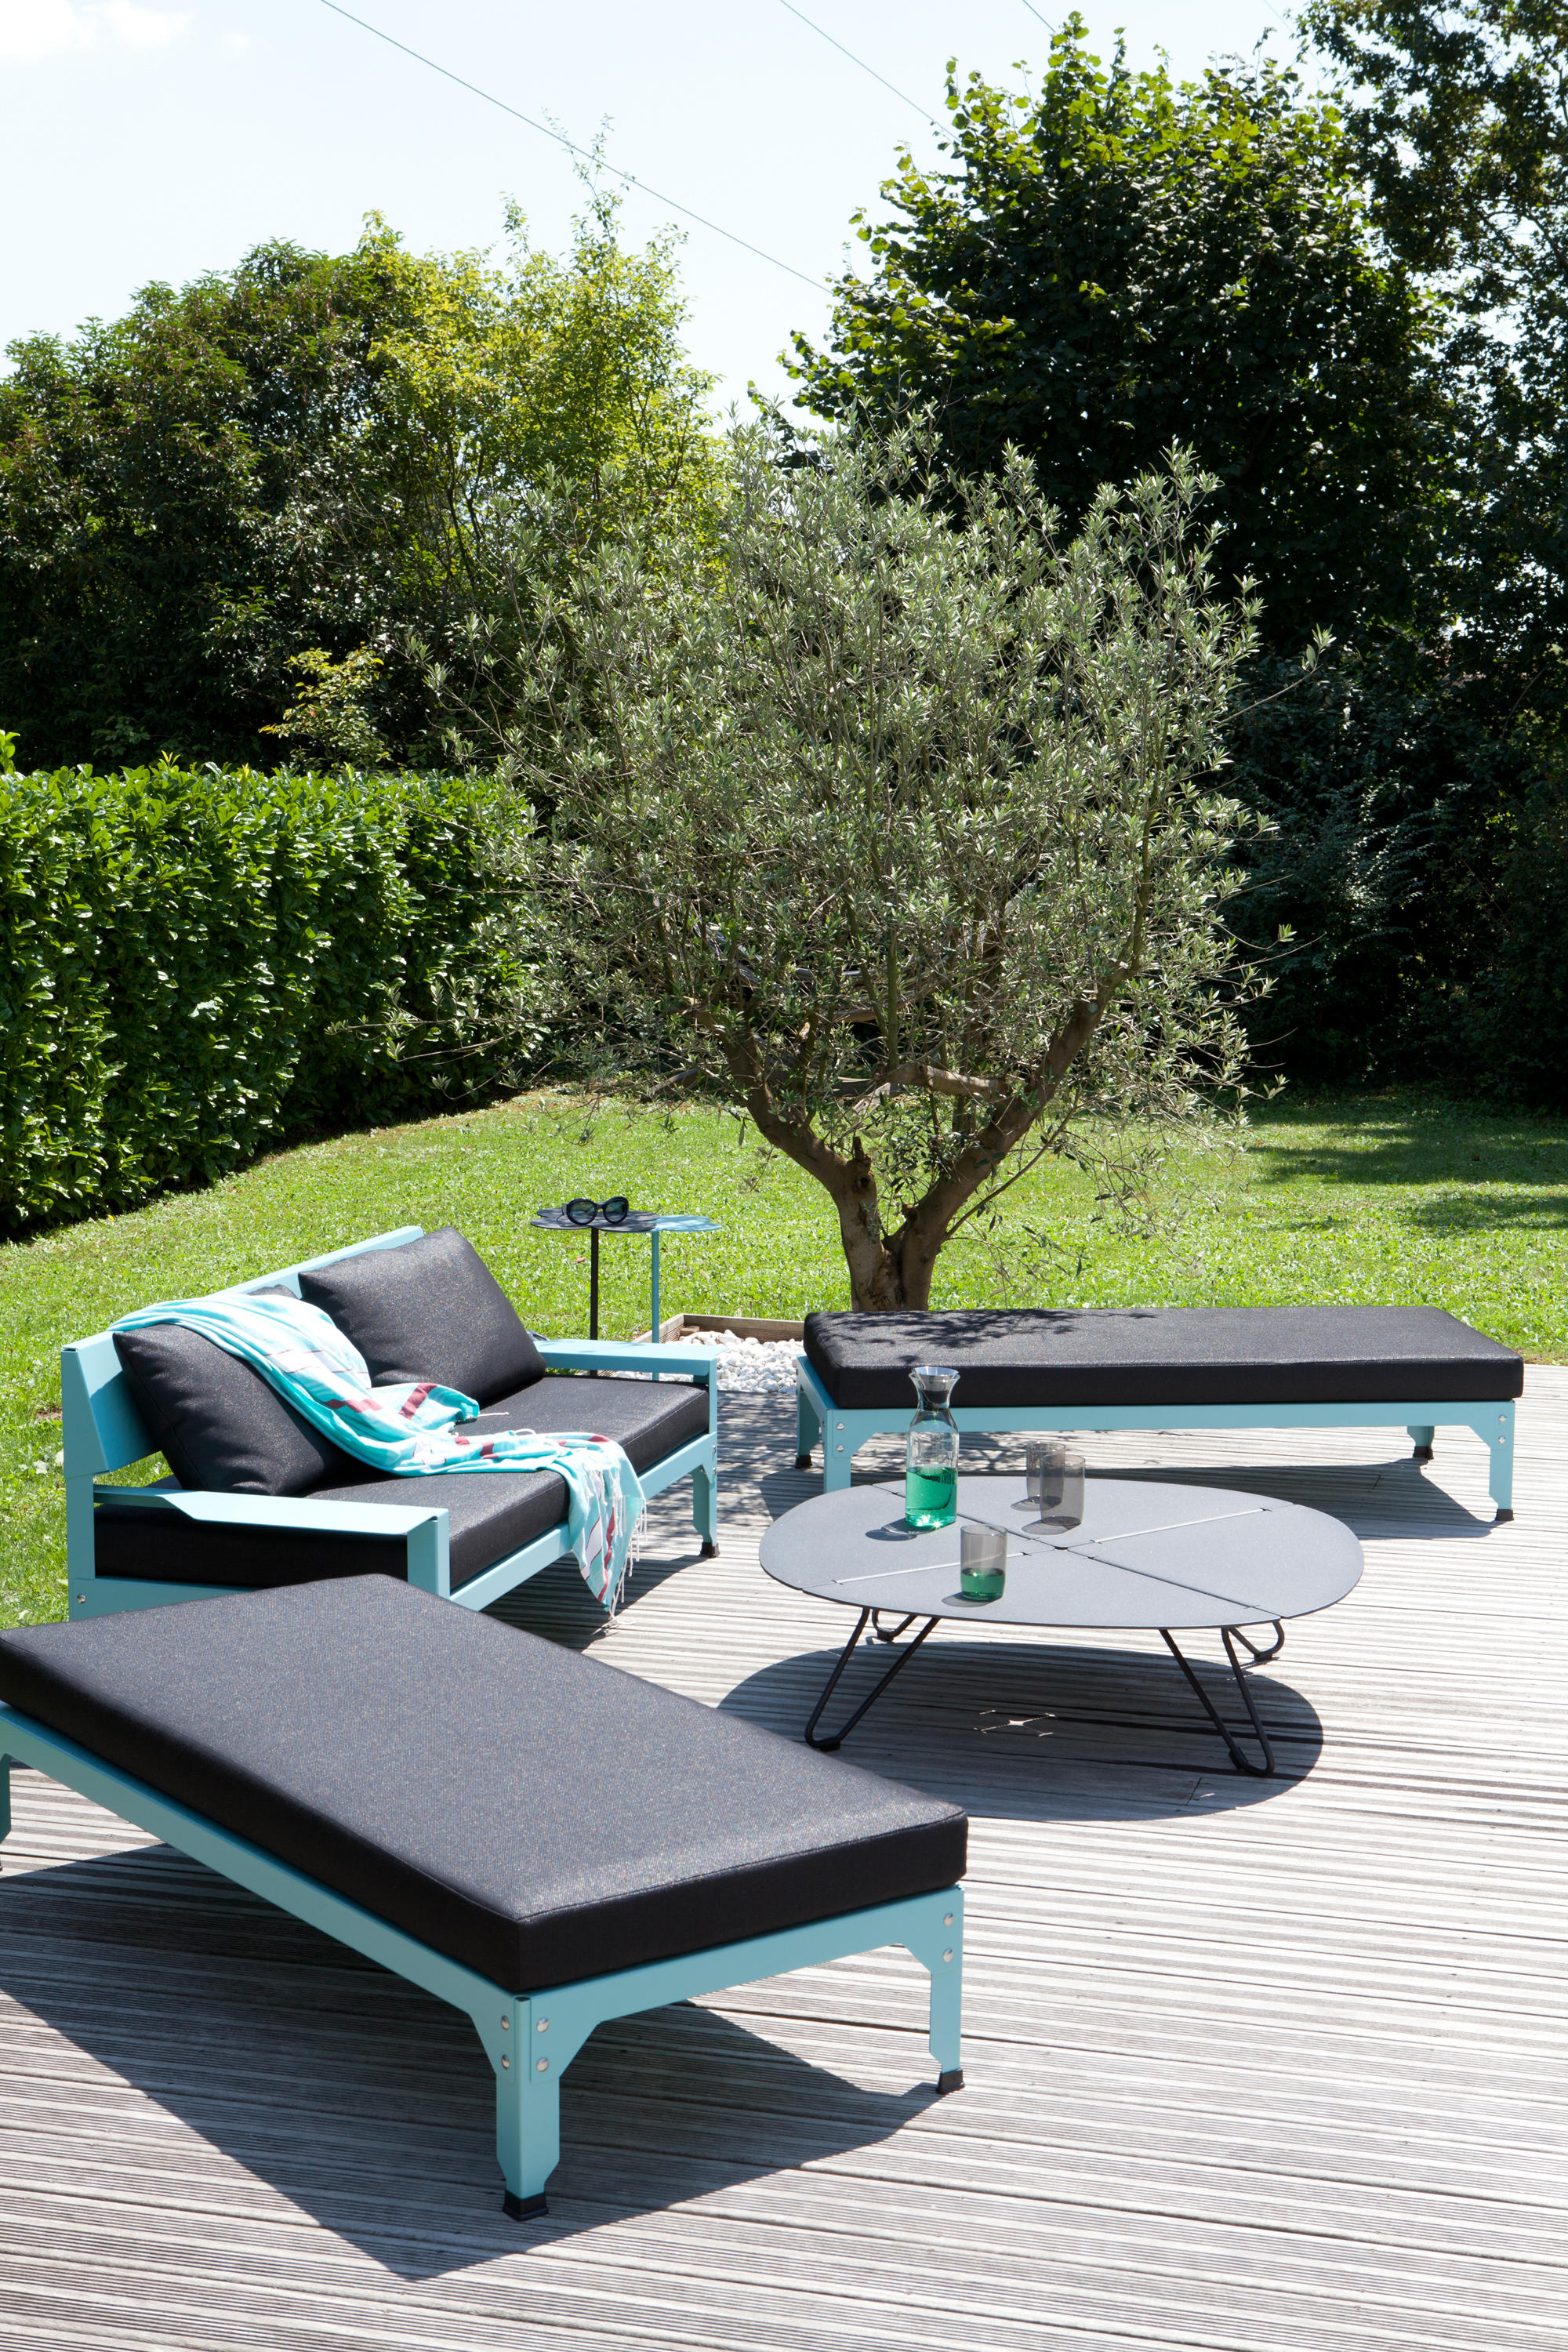 HEGOA STANDING TABLE Bar tables from Mati¨re Grise